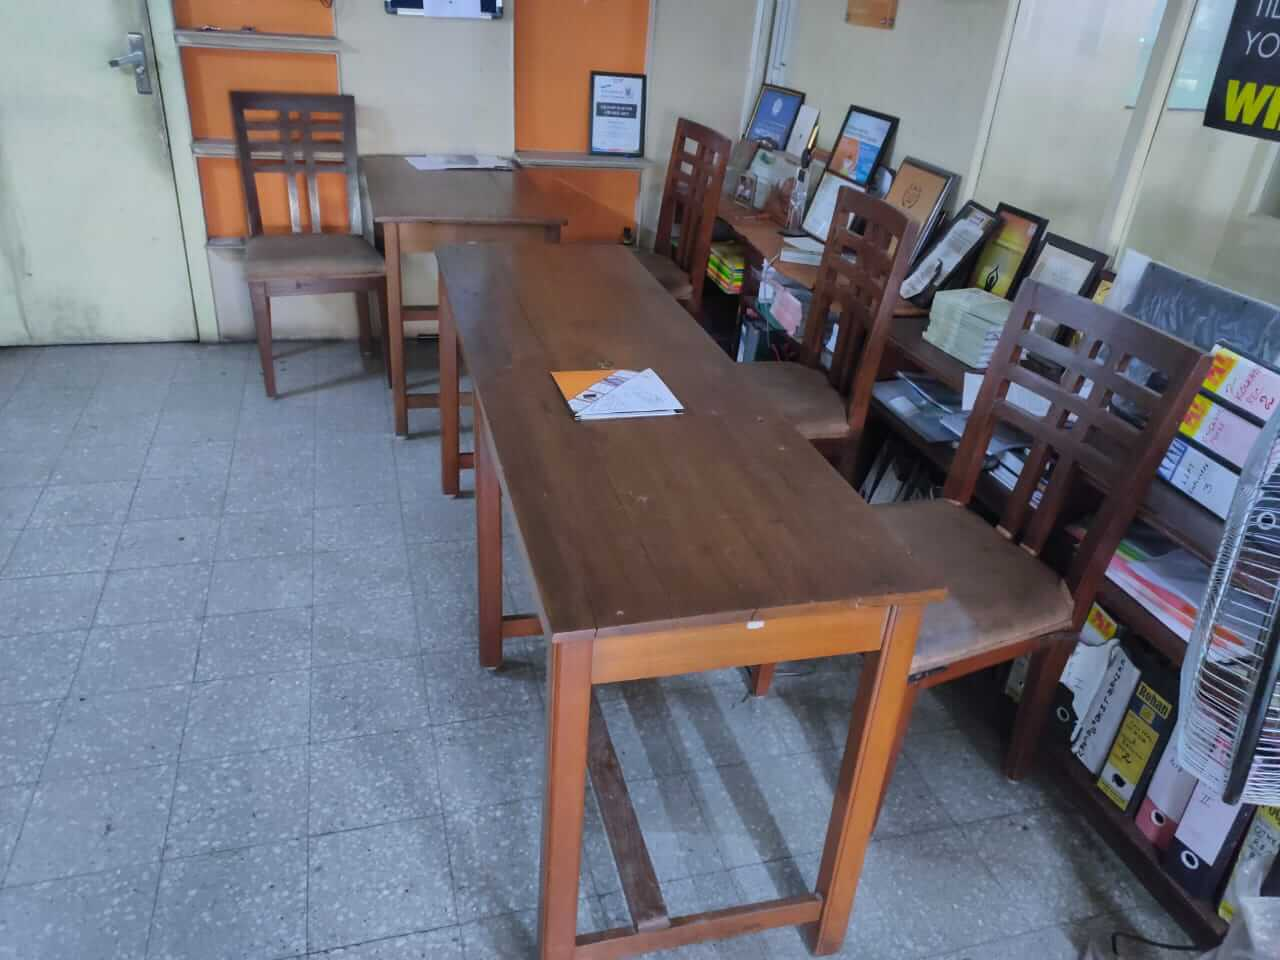 ON co works for commercial use as co working space for monthly, daily rental basis